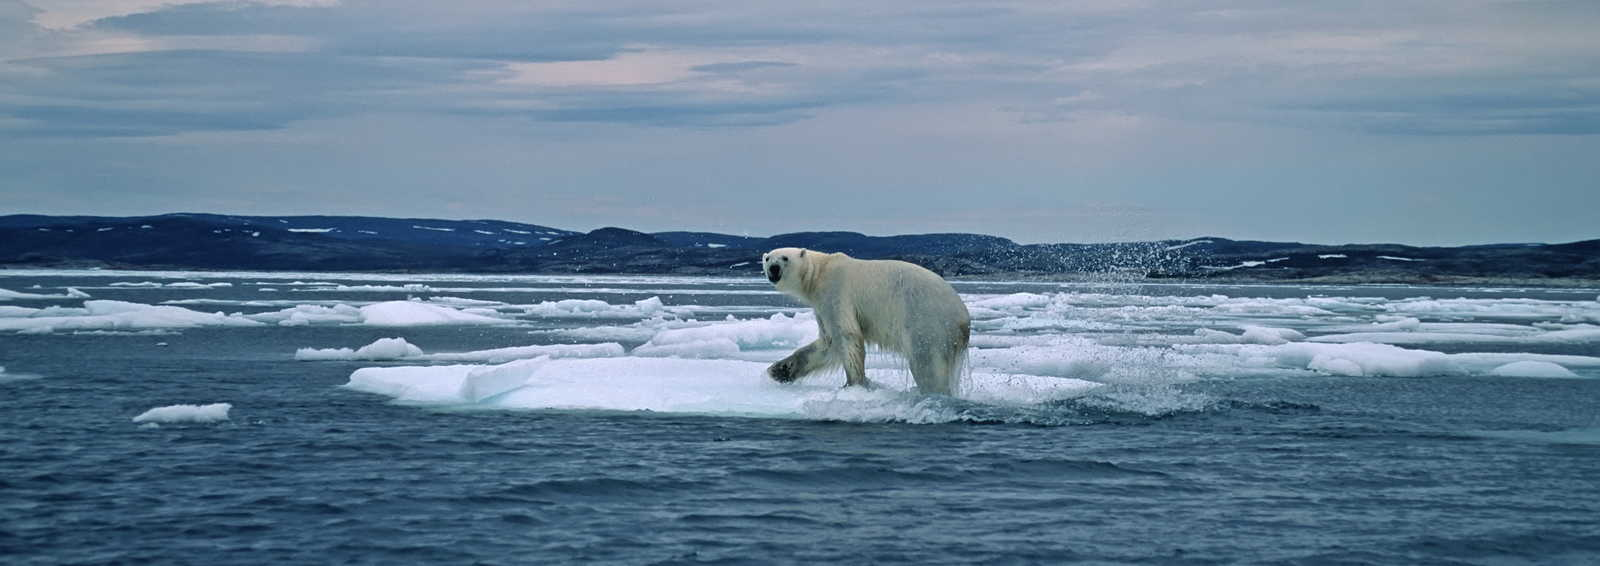 Polar Bear, Canadian Arctic